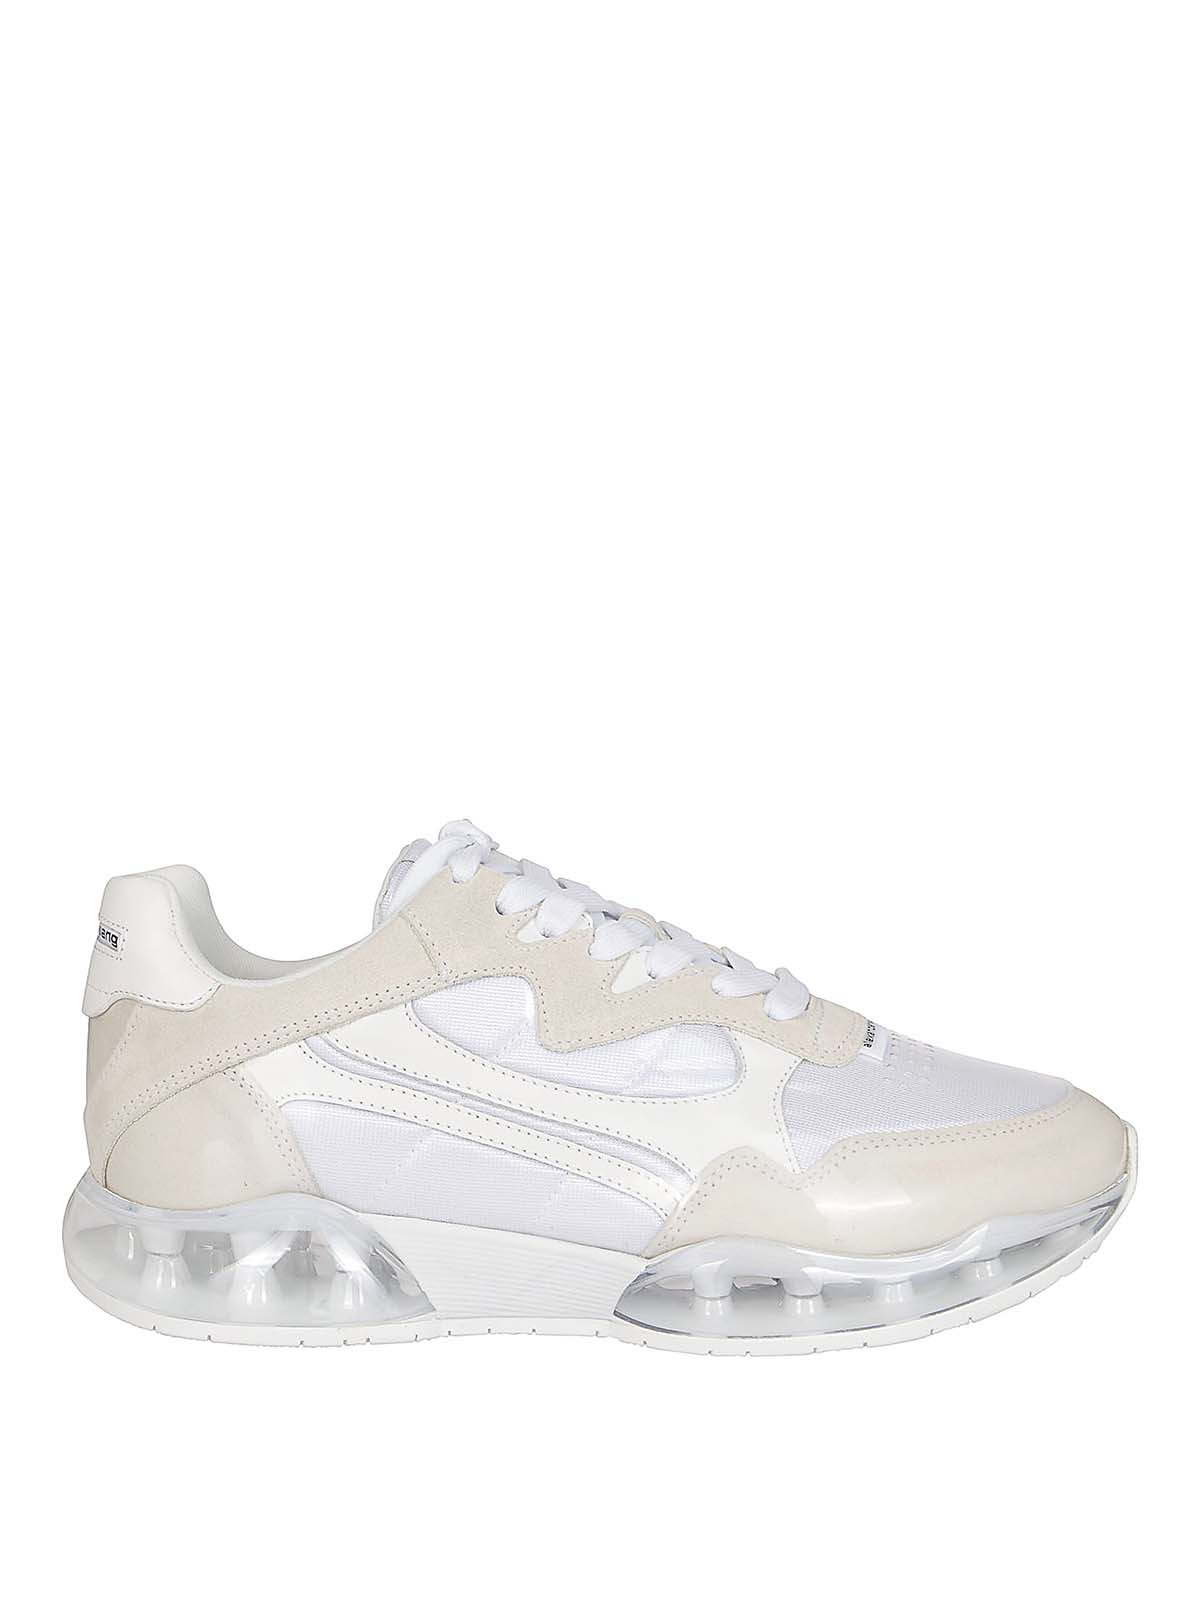 Alexander Wang Stadium Two-tone Suede, Mesh And Rubber Sneakers In White